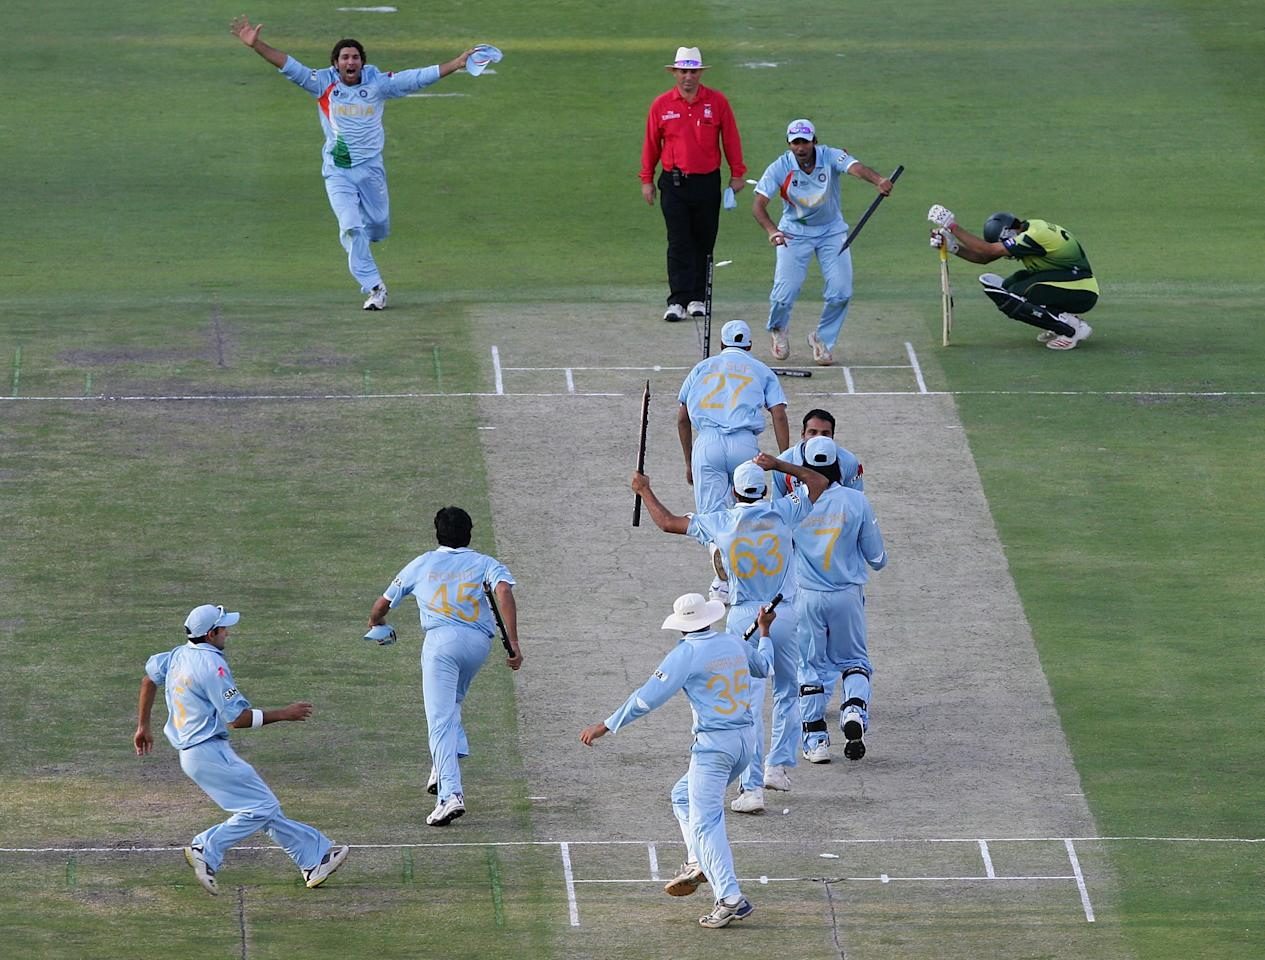 JOHANNESBURG, SOUTH AFRICA - SEPTEMBER 24:  The Indian Team celebrate their win with Misbah-ul-Haq looking on after the Twenty20 Championship Final match between Pakistan and India at The Wanderers Stadium on September 24, 2007 in Johannesburg, South Africa.  (Photo by Hamish Blair/Getty Images)